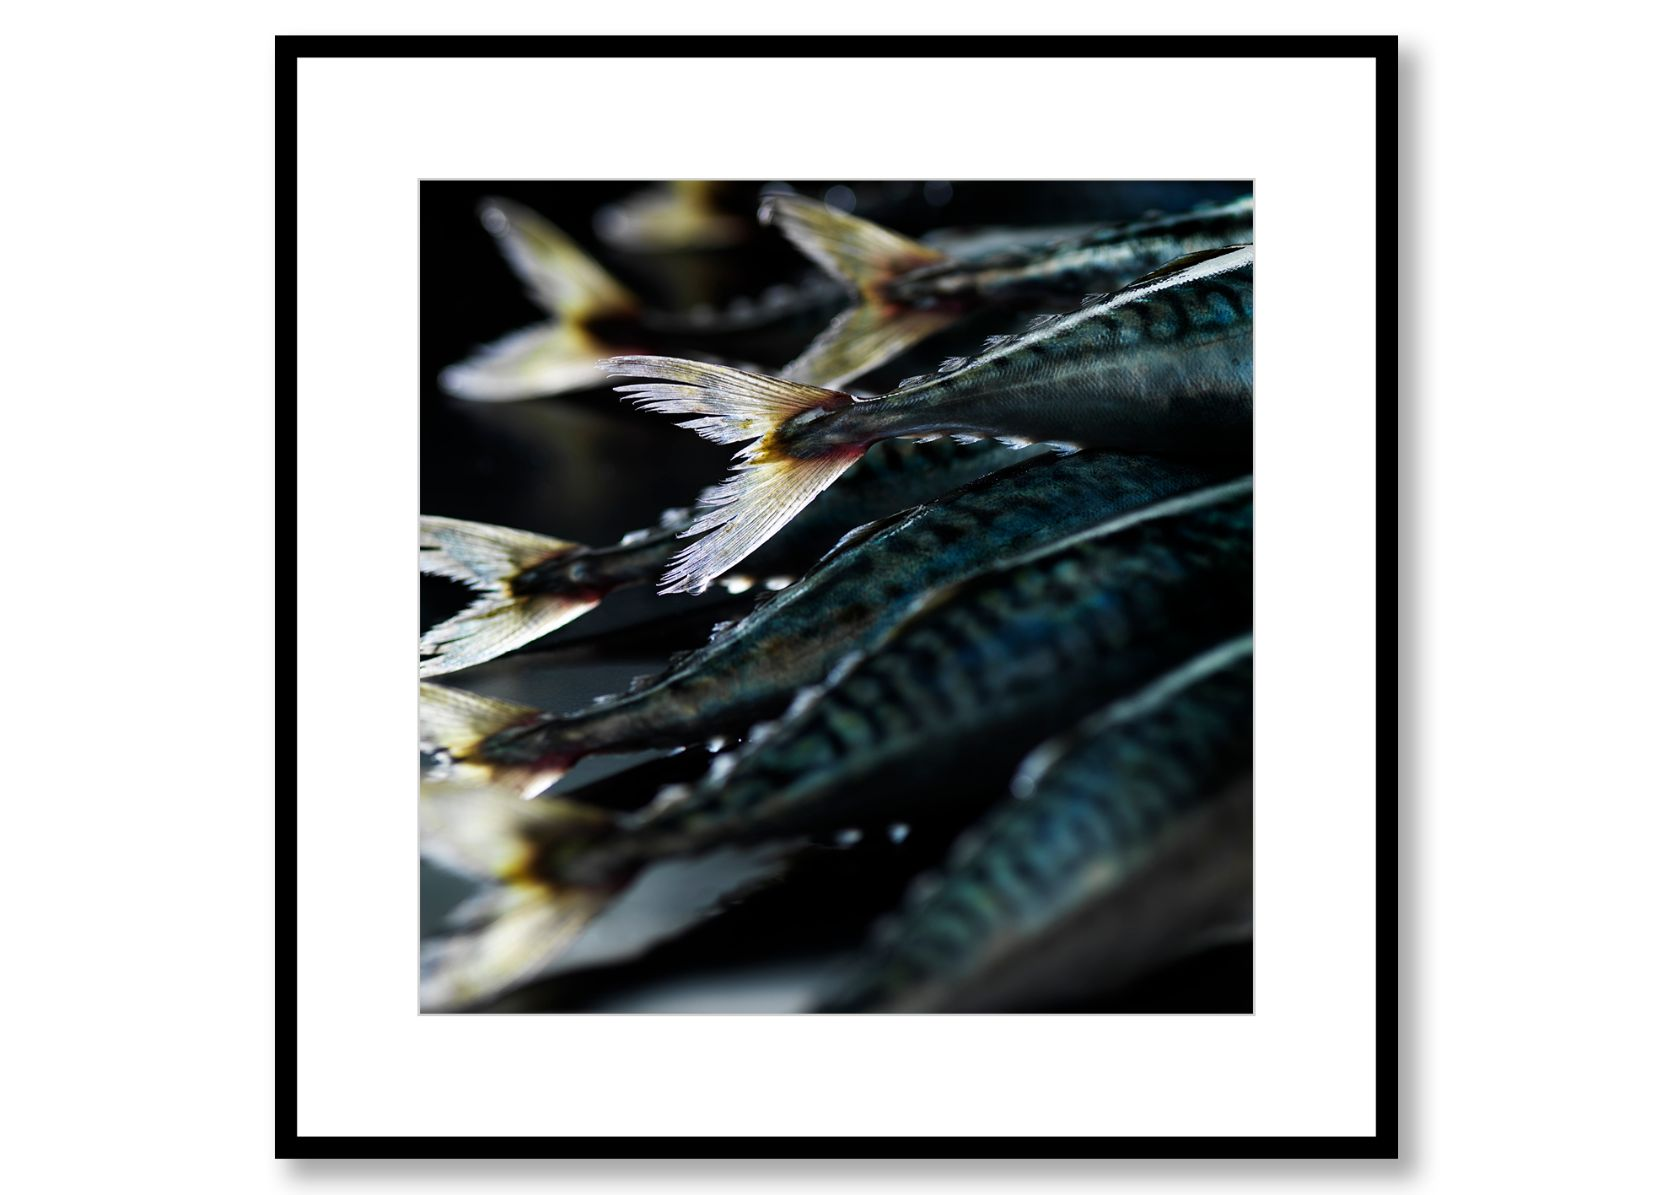 Mackerel. Food Art. Prints for sale. Photo by Fredrik Rege